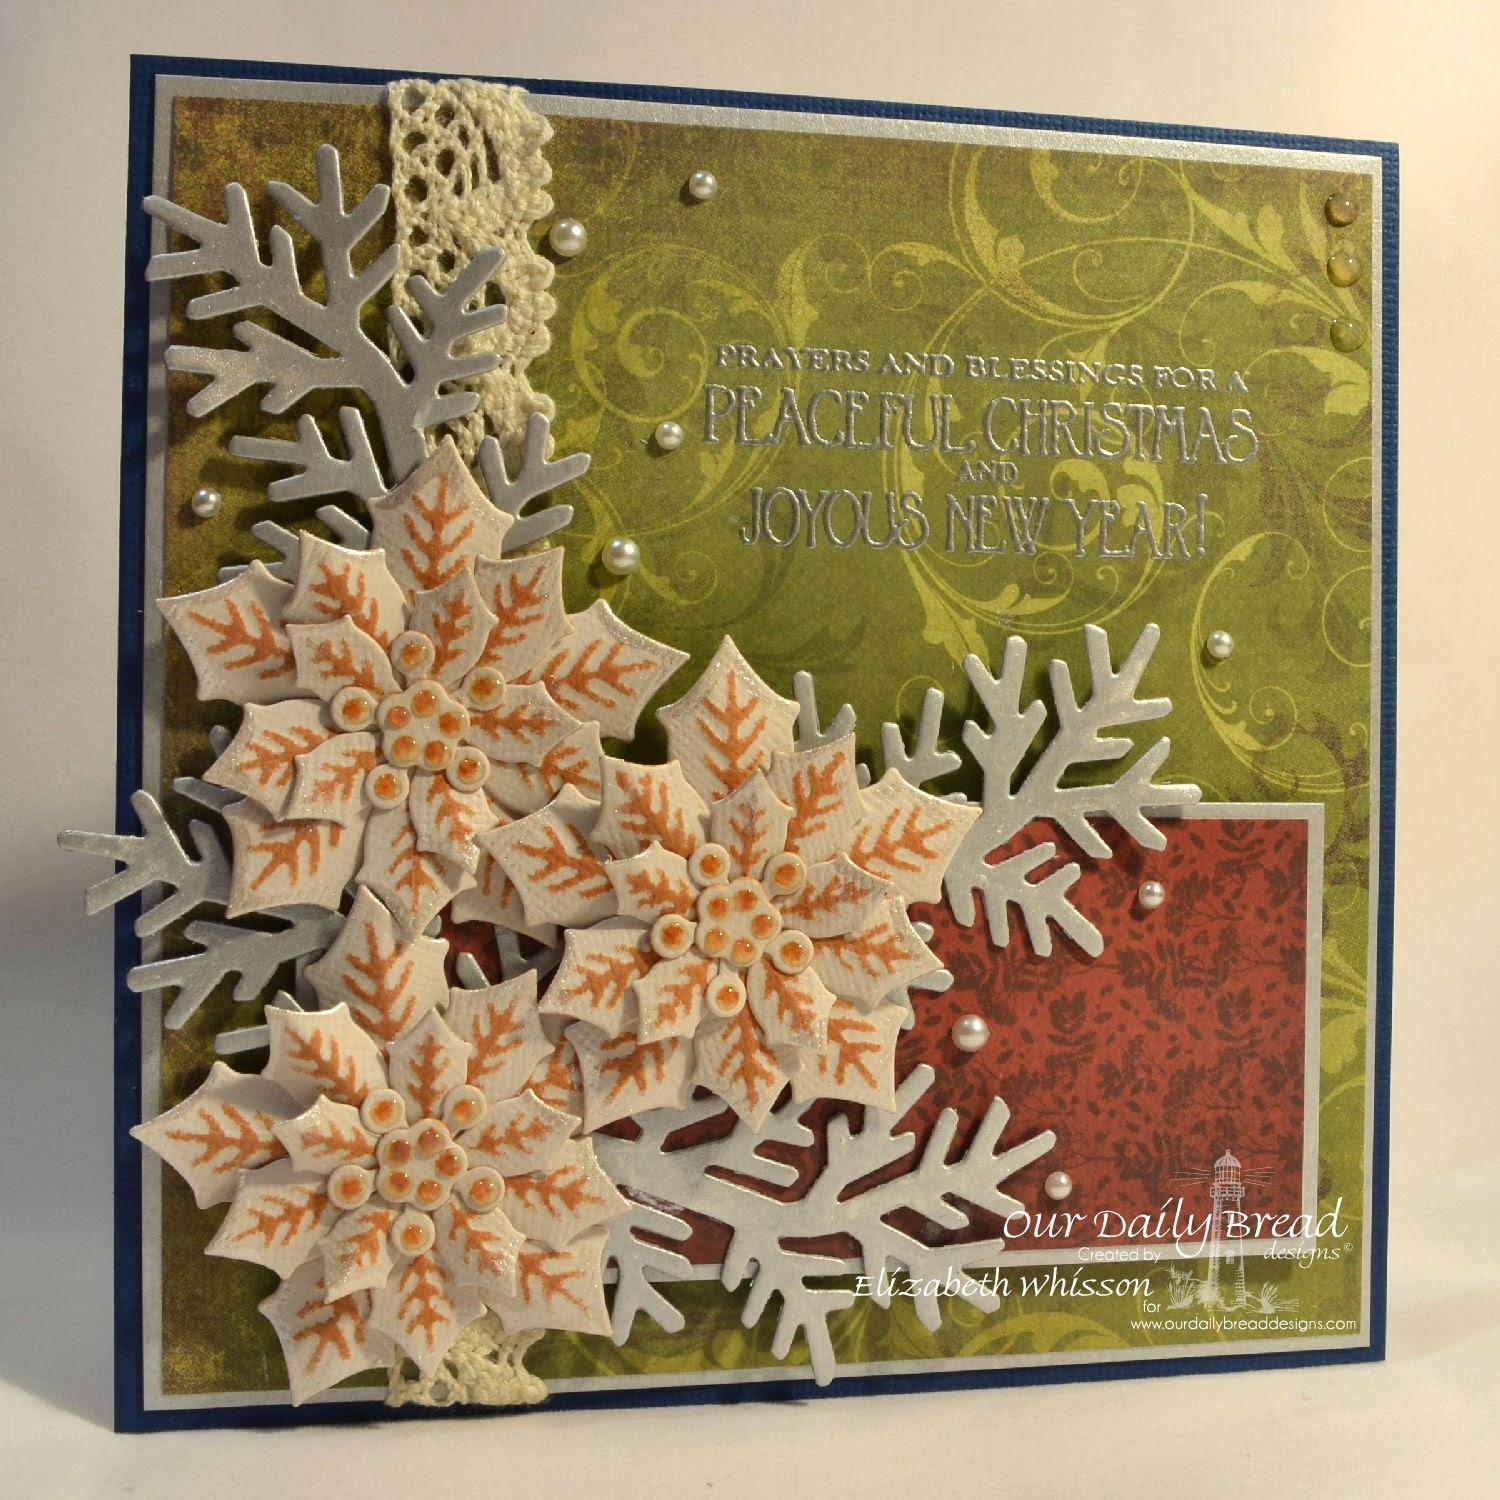 Our Daily Bread Designs, Elizabeth Whisson, ODBD Peaceful Poinsettias Dies, ODBD Fancy Foliage Dies, Christmas card, handmade, Christmas Door